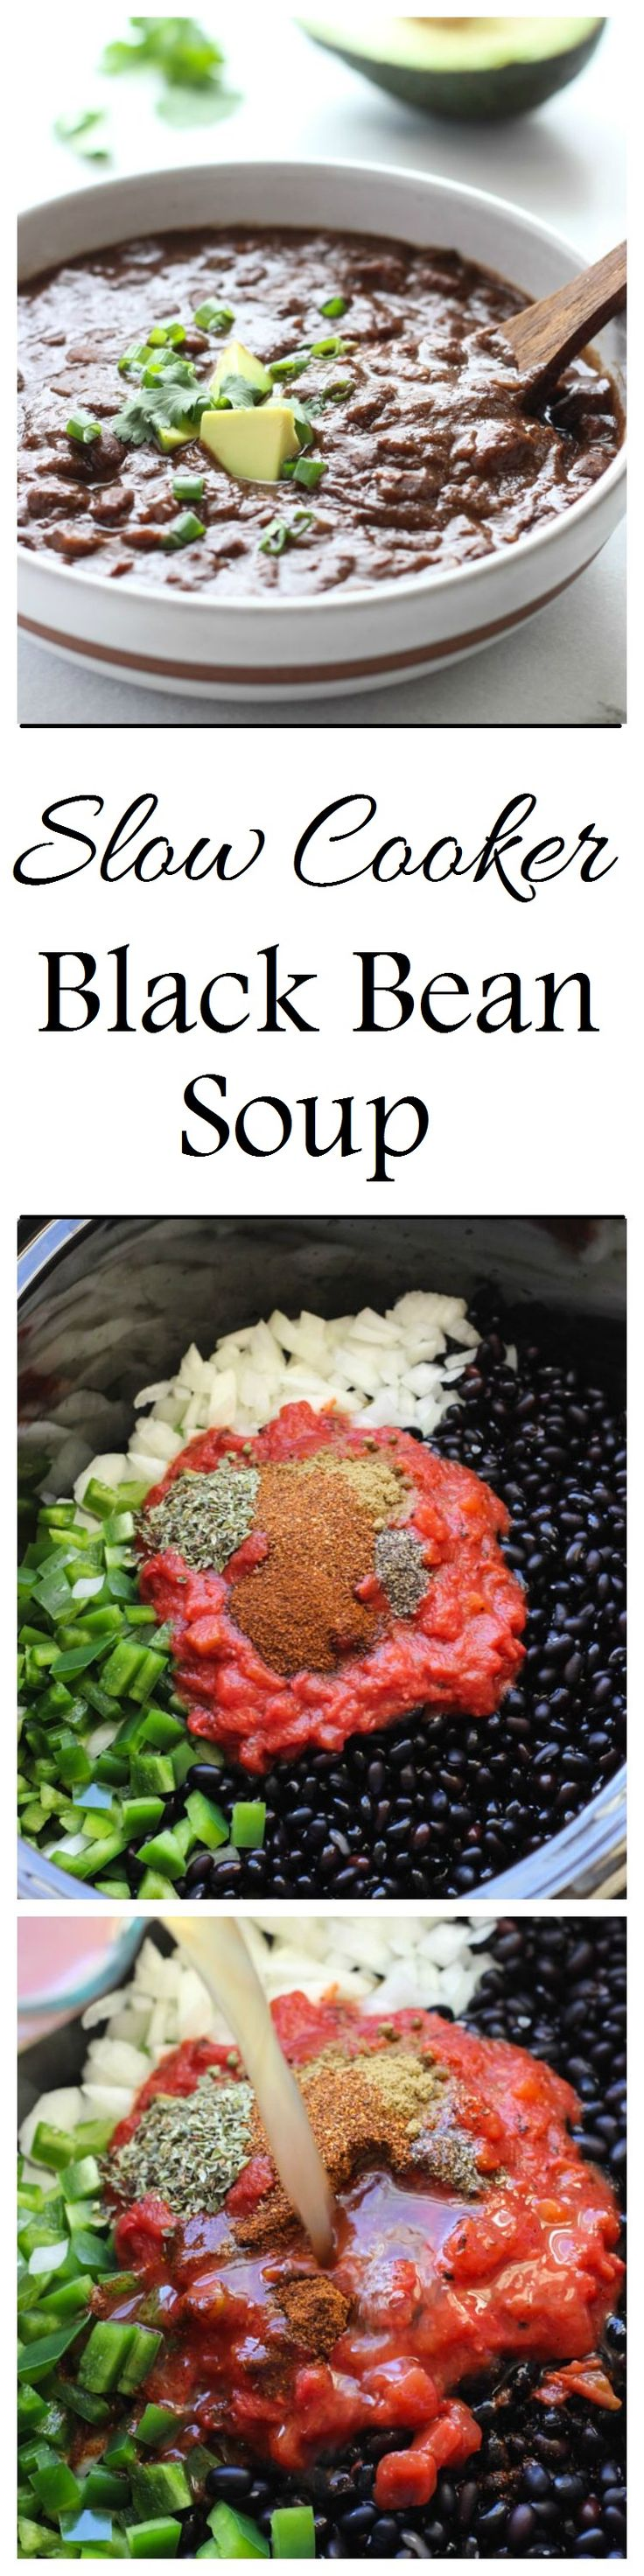 Easy Slow Cooker Black Bean Soup- throw everything in your slow cooker and come home to a warm and healthy meal! (vegan + gluten-free)